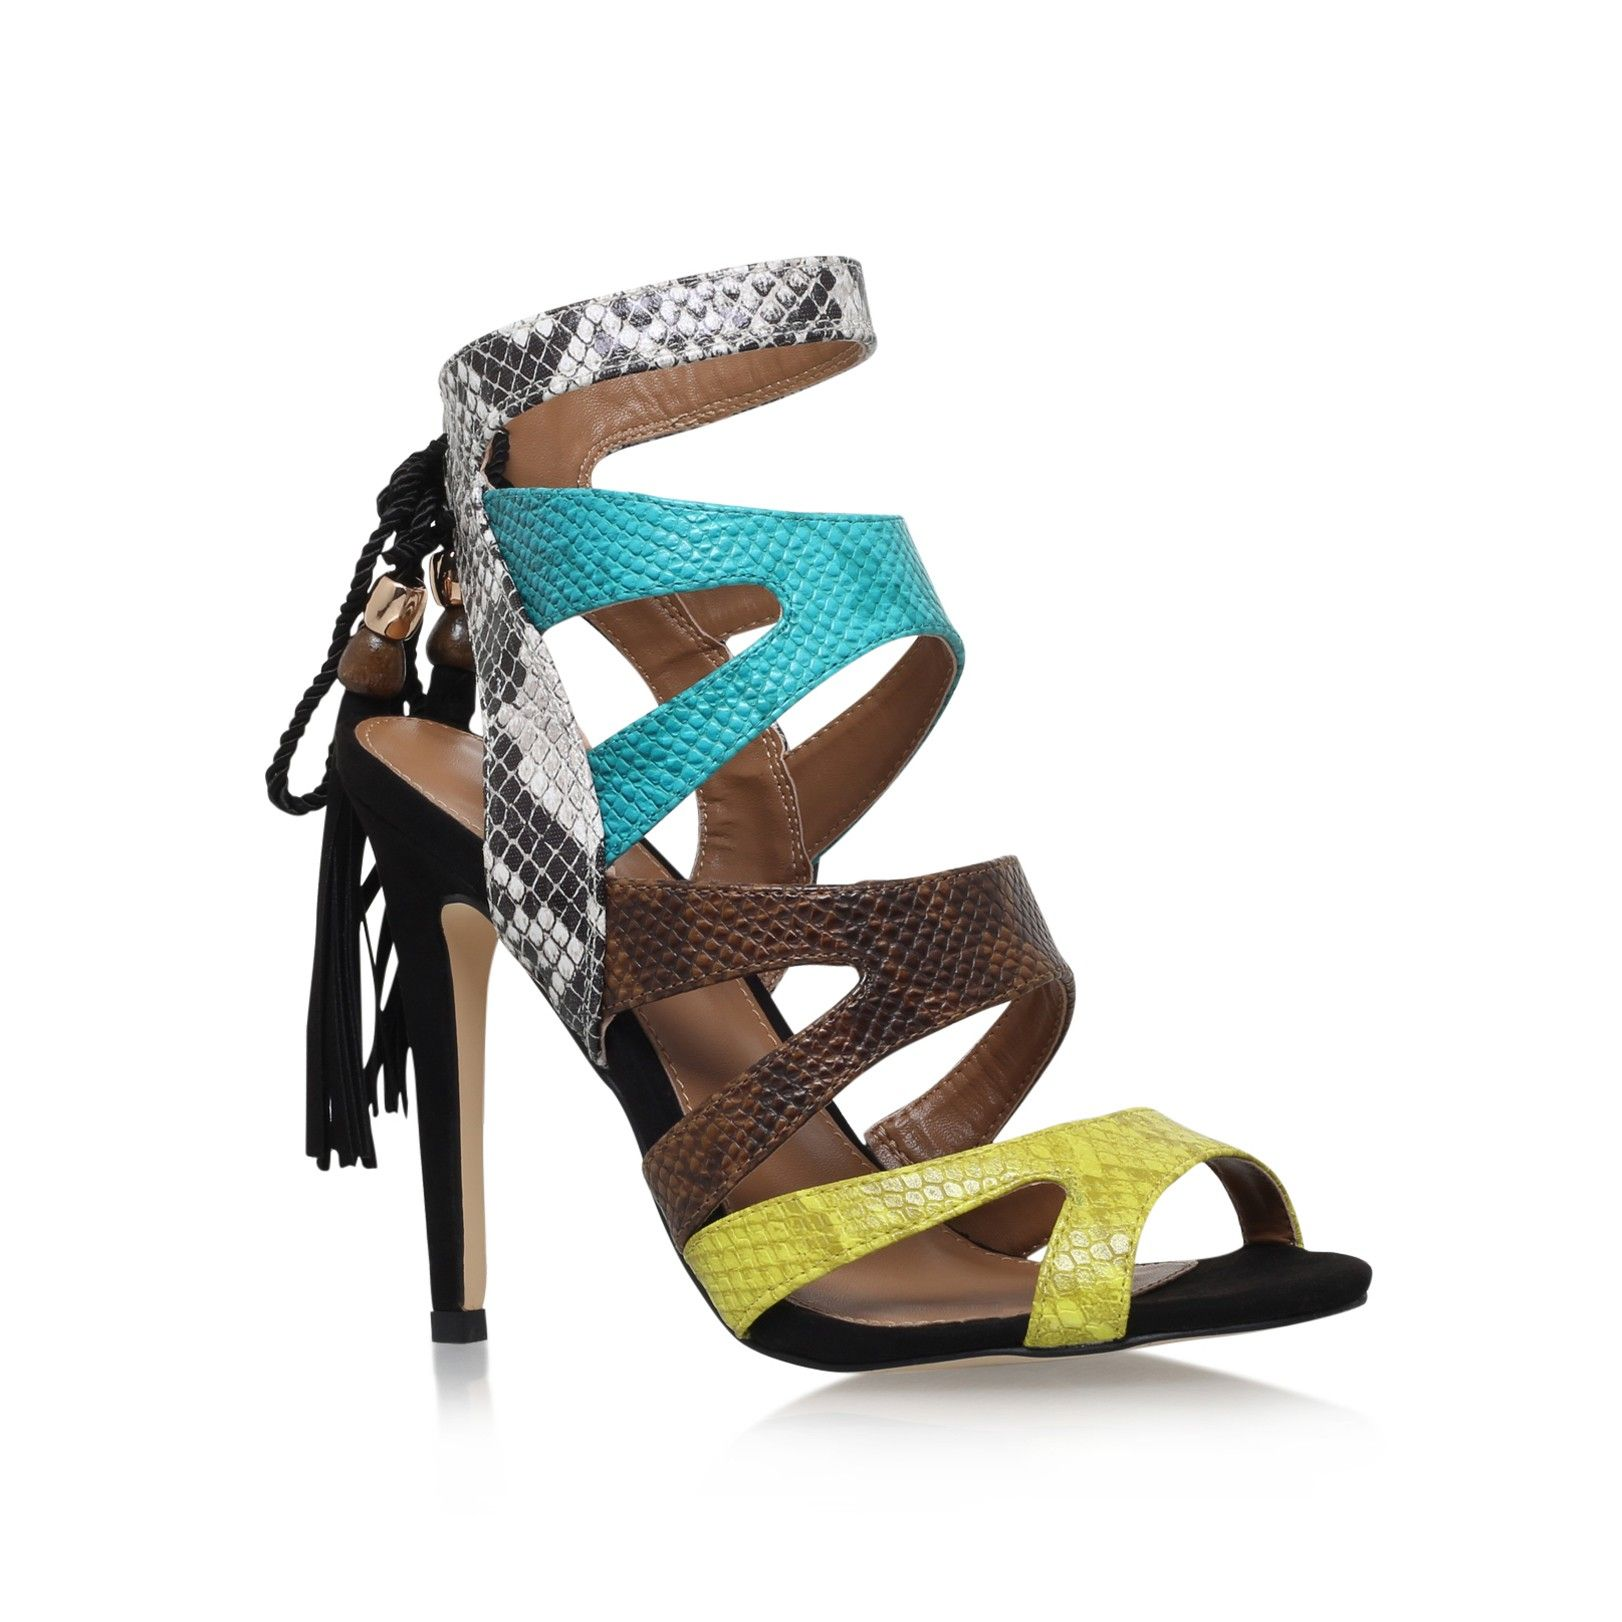 forest green high heel sandals from Miss KG